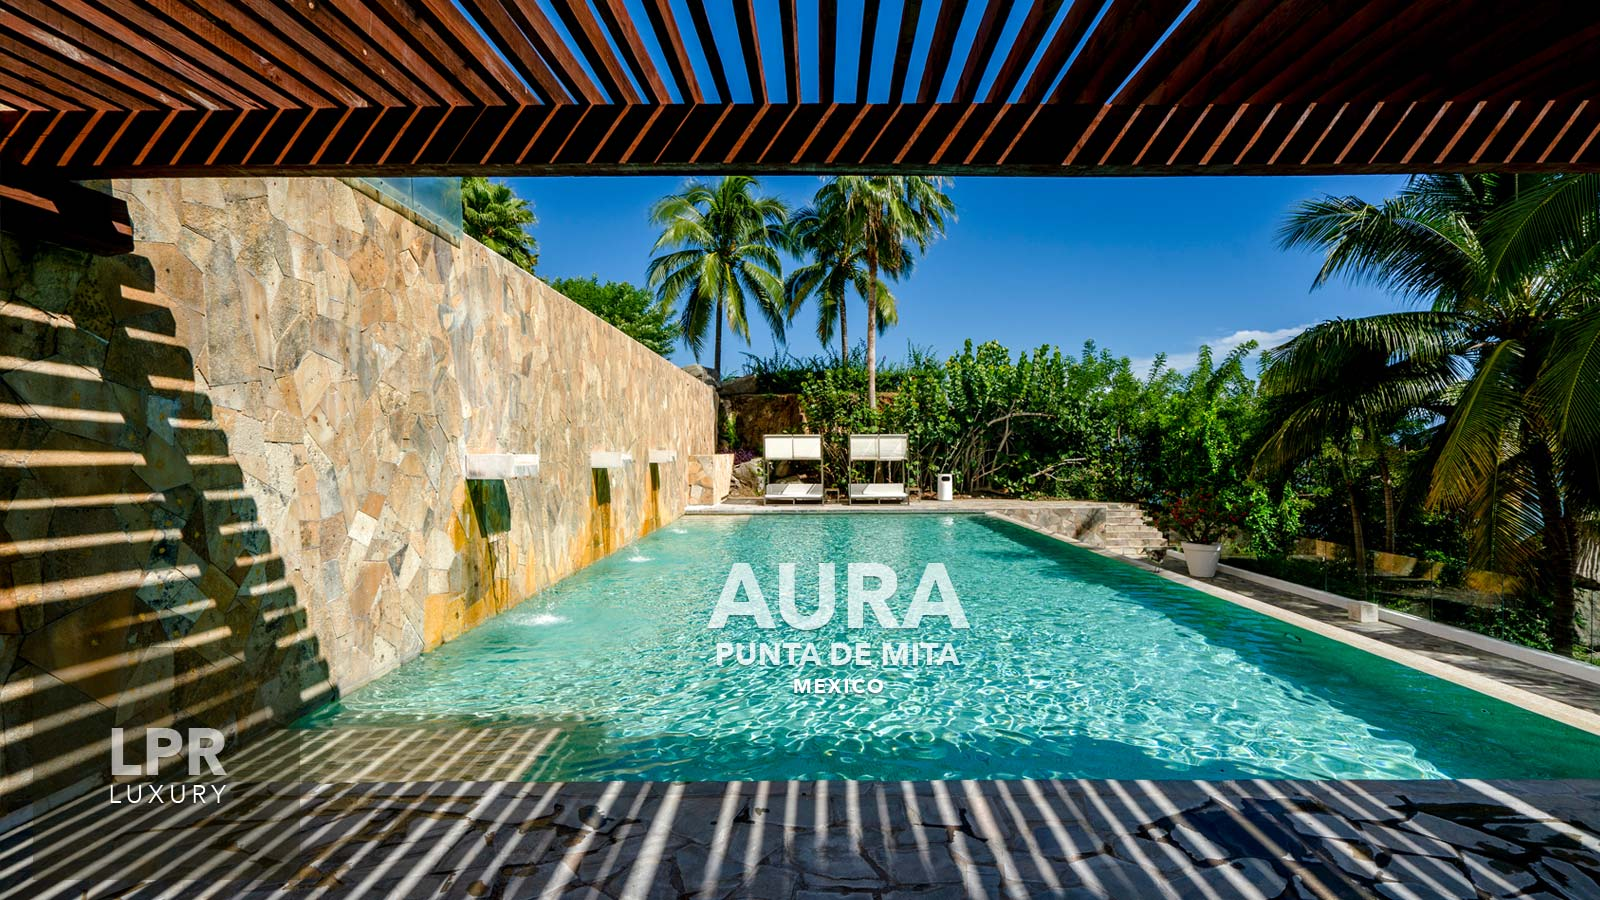 Aura Arena Blanca - Luxury Punta de Mita condominium - Riviera Nayarit - Puerto Vallarta Vacation Rentals and Real Estate